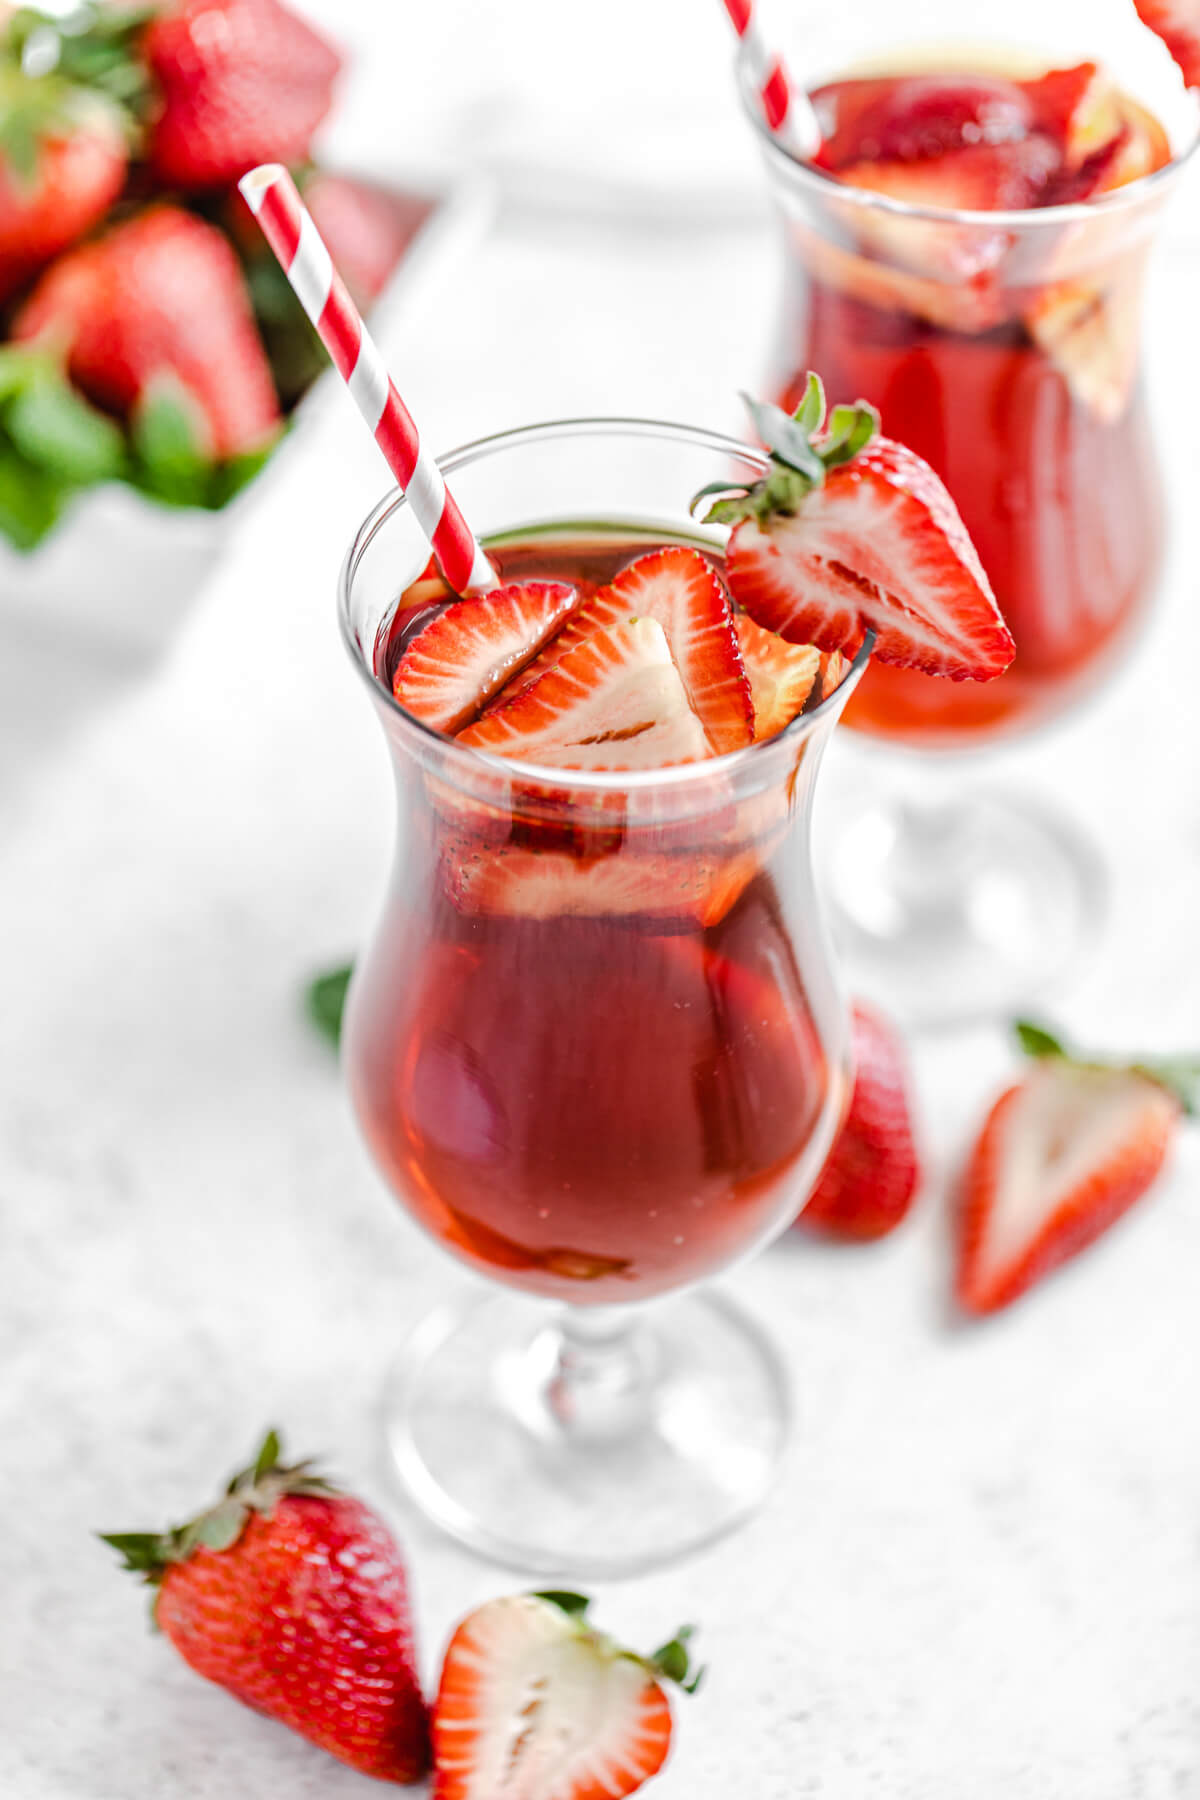 top angled view to show inside of glass with iced tea, fresh strawberries and a red striped paper straw inside